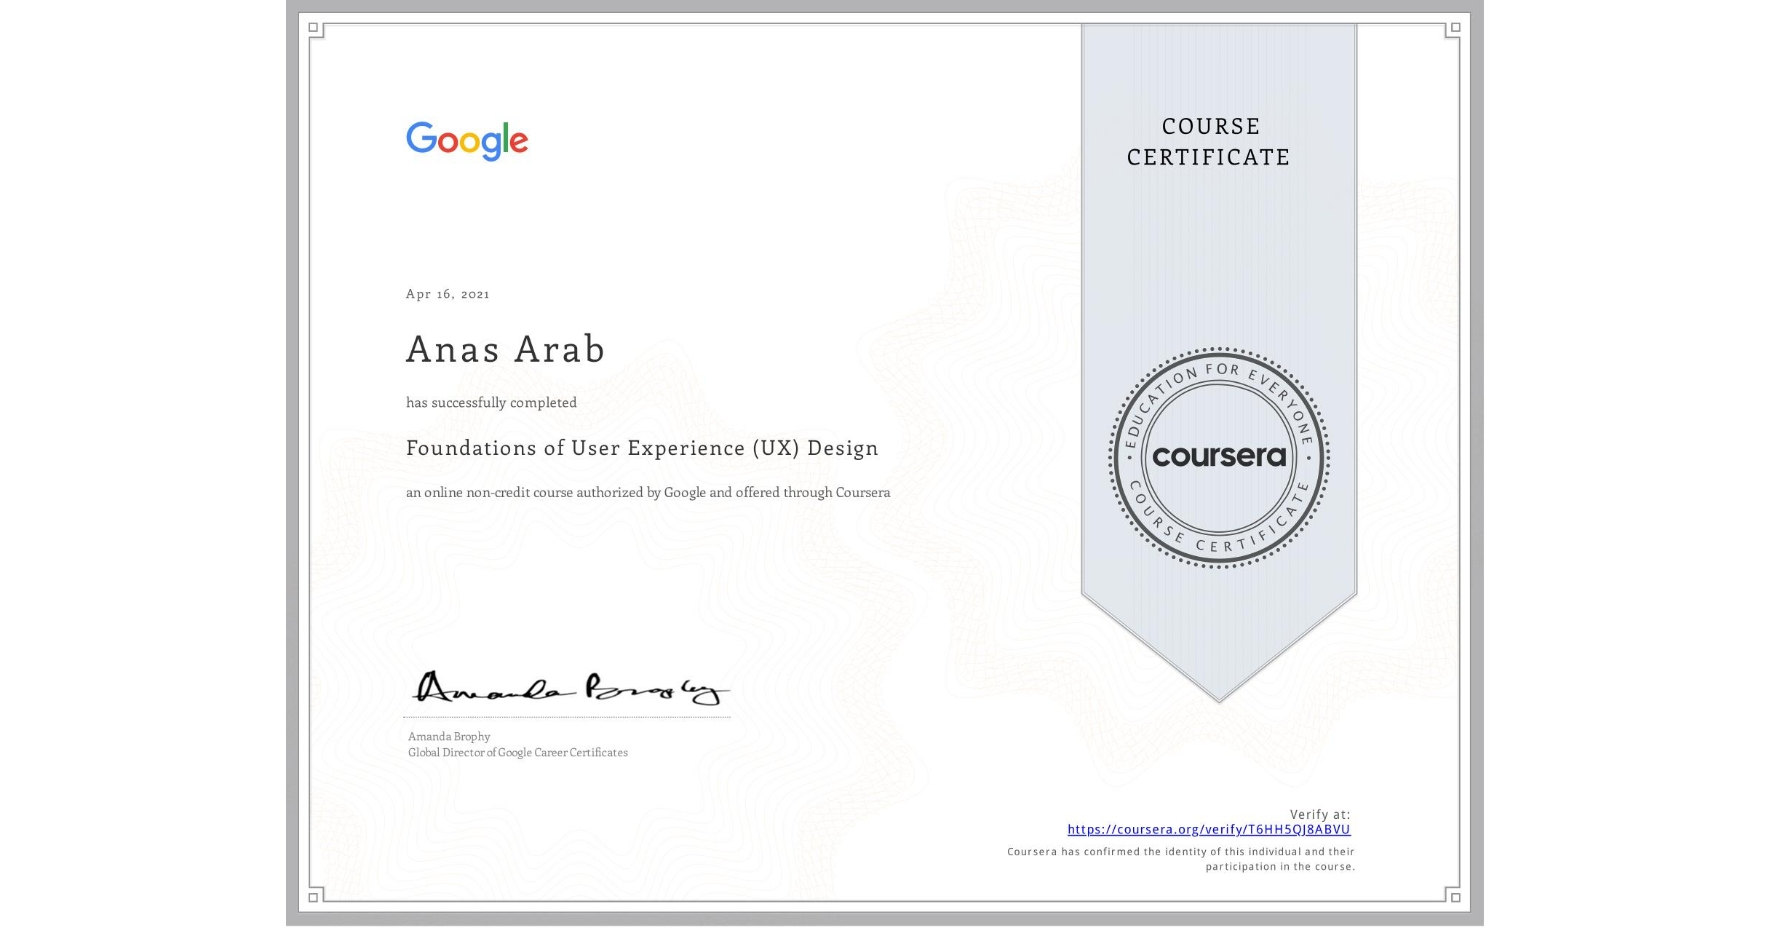 View certificate for Anas Arab, Foundations of User Experience (UX) Design, an online non-credit course authorized by Google and offered through Coursera